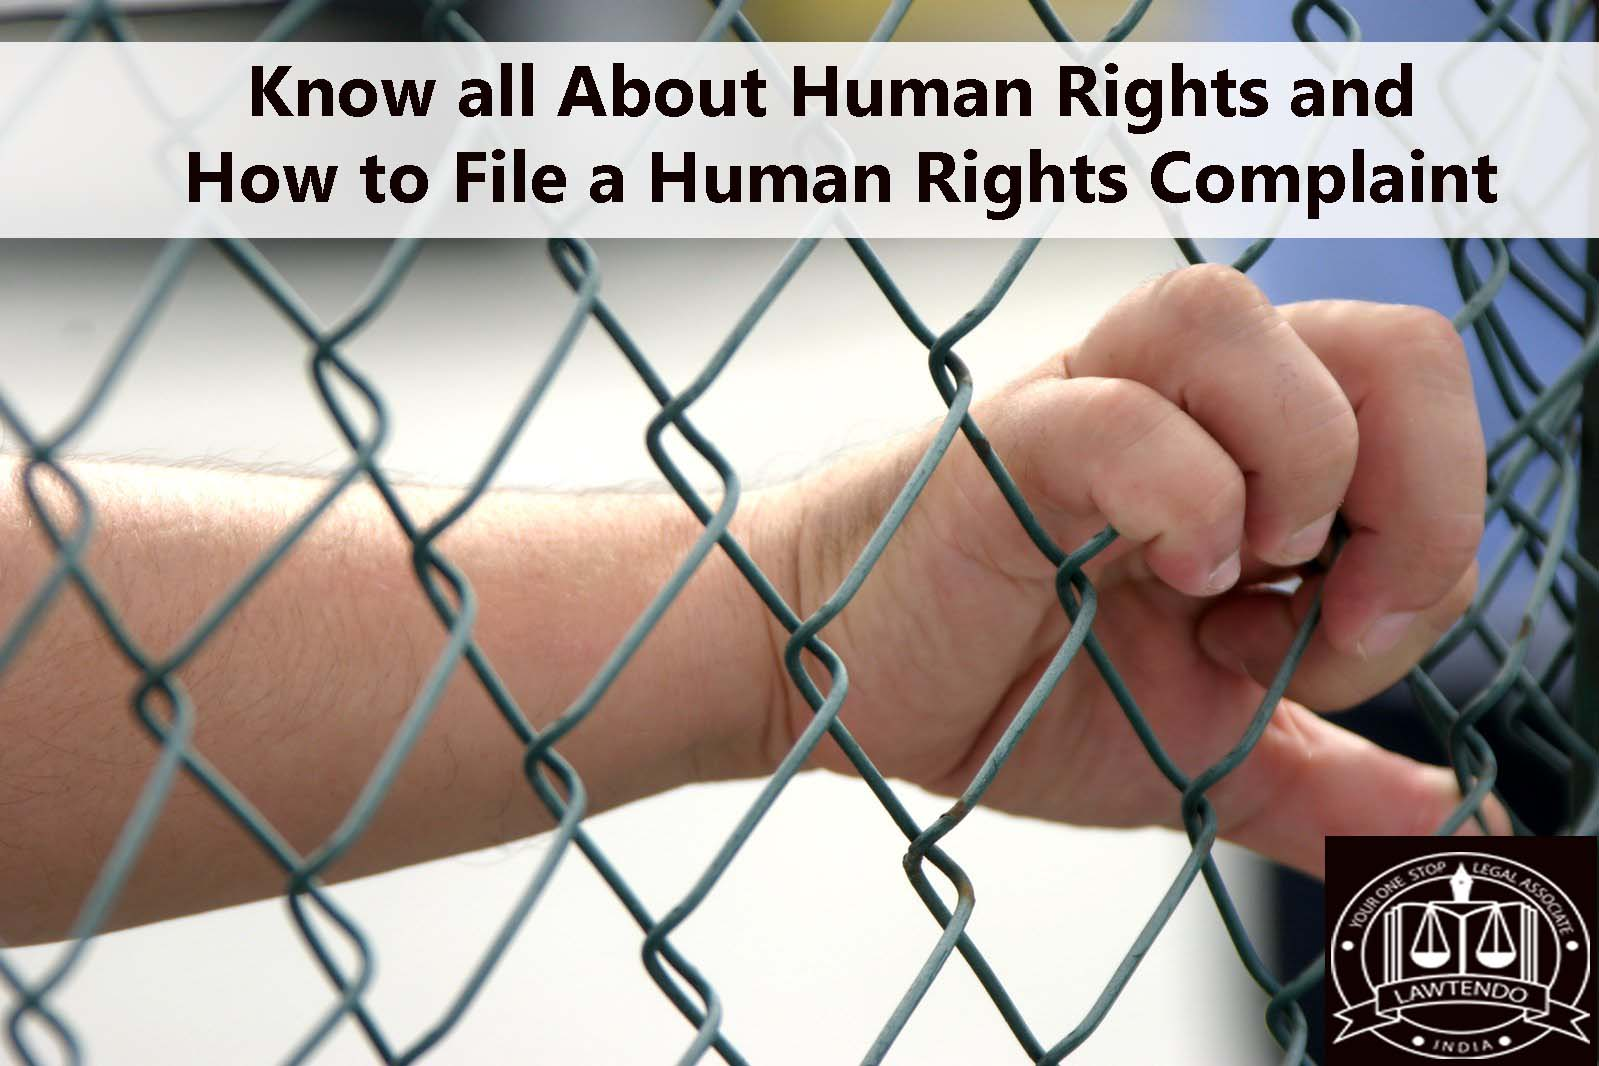 Know All About Human Rights and How to File a Human Rights Complaint